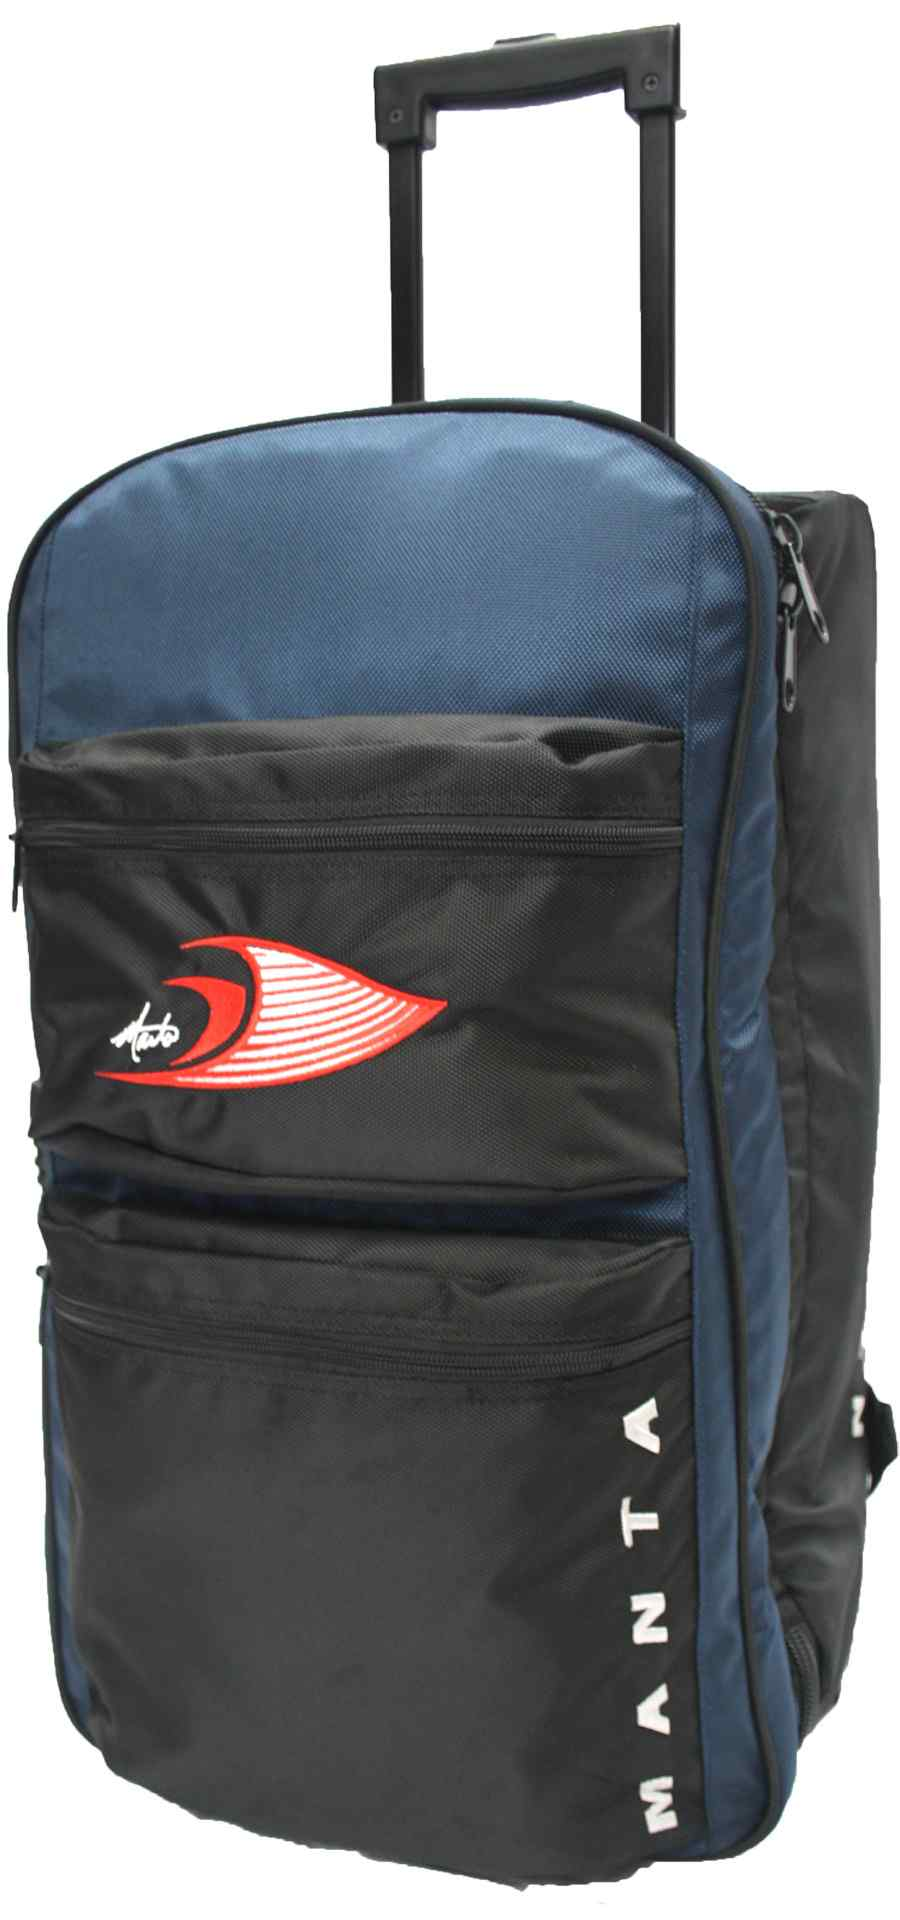 aefbcee128 MANTA BODYBOARDS COMPACT CARRY ON BAG